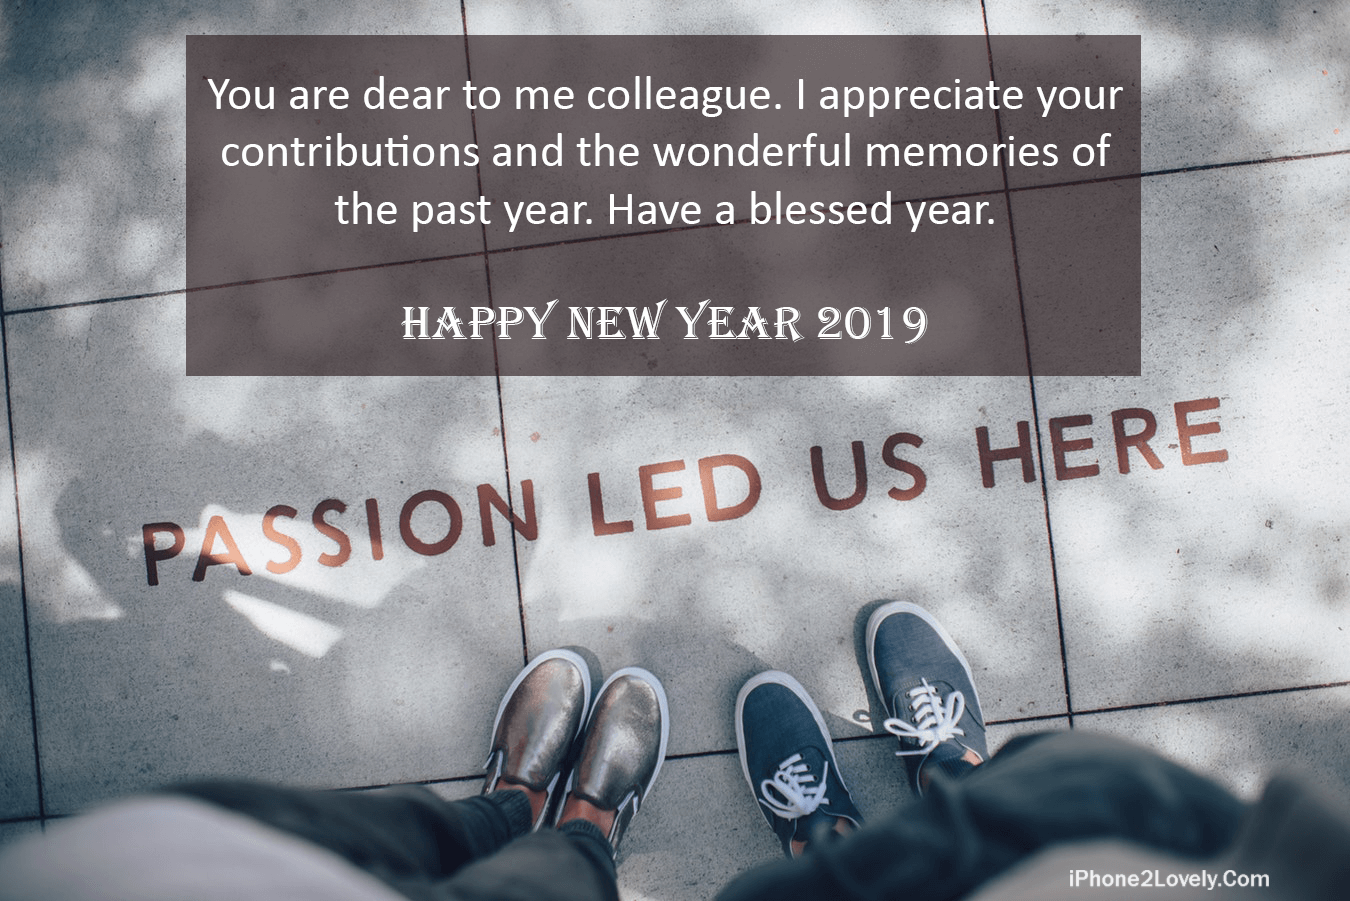 New Year 2019 Best Wishes For Collegues And Team Members Happy New Year Wishes New Year 2020 Happy New Year Quotes